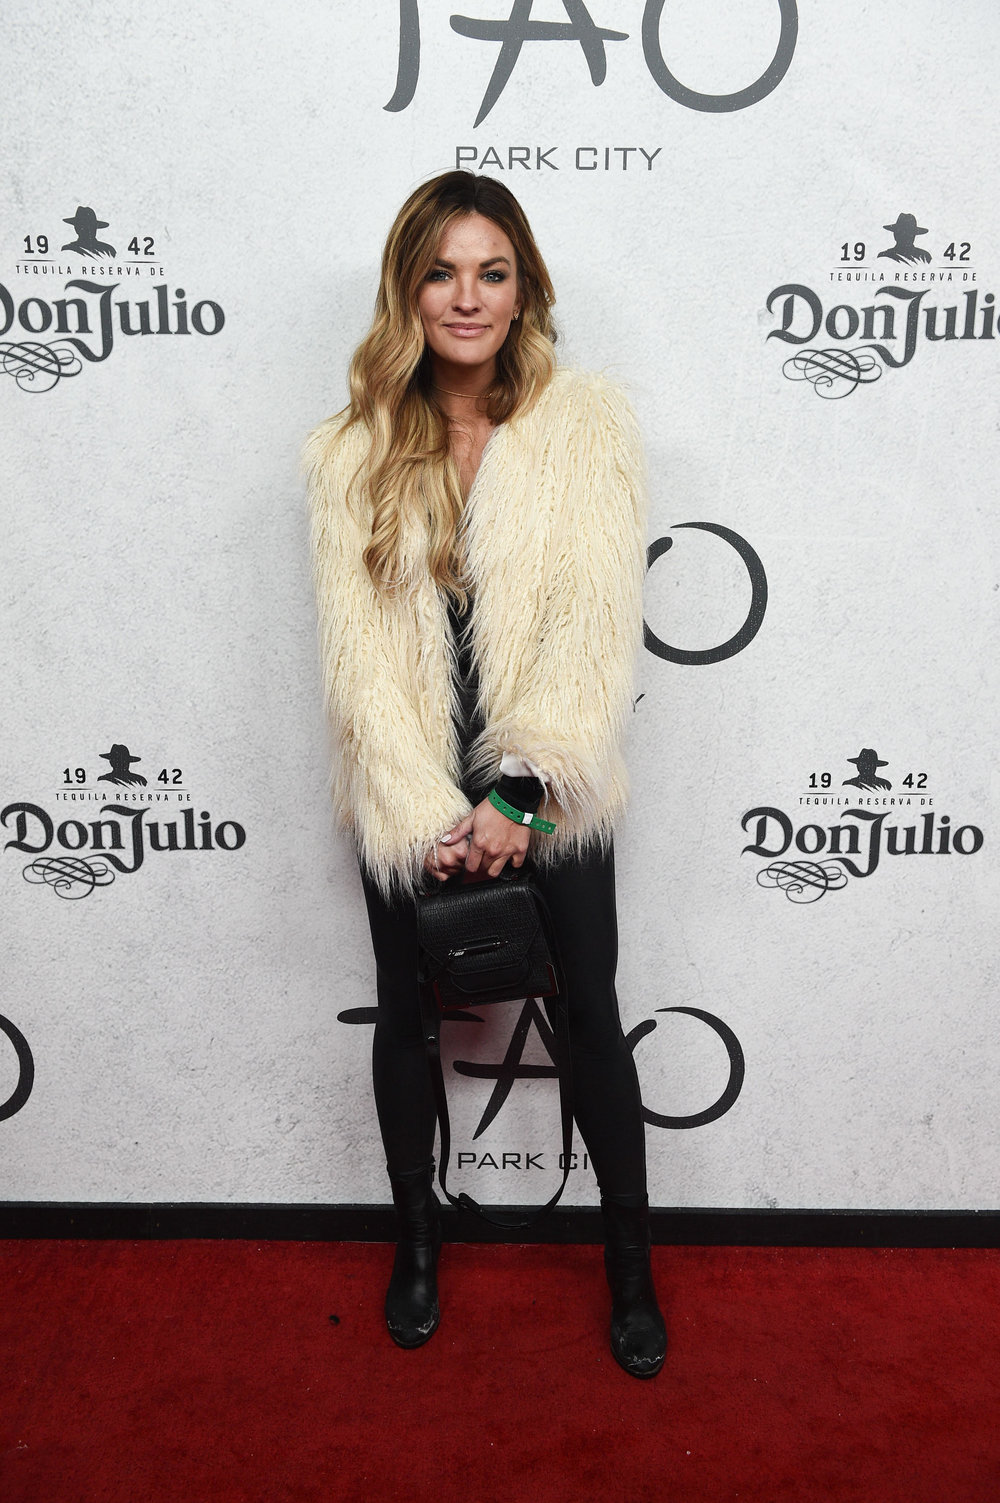 Bachelor Alum Becca Tilley Partied at TAO Park City! Courtesy Photo